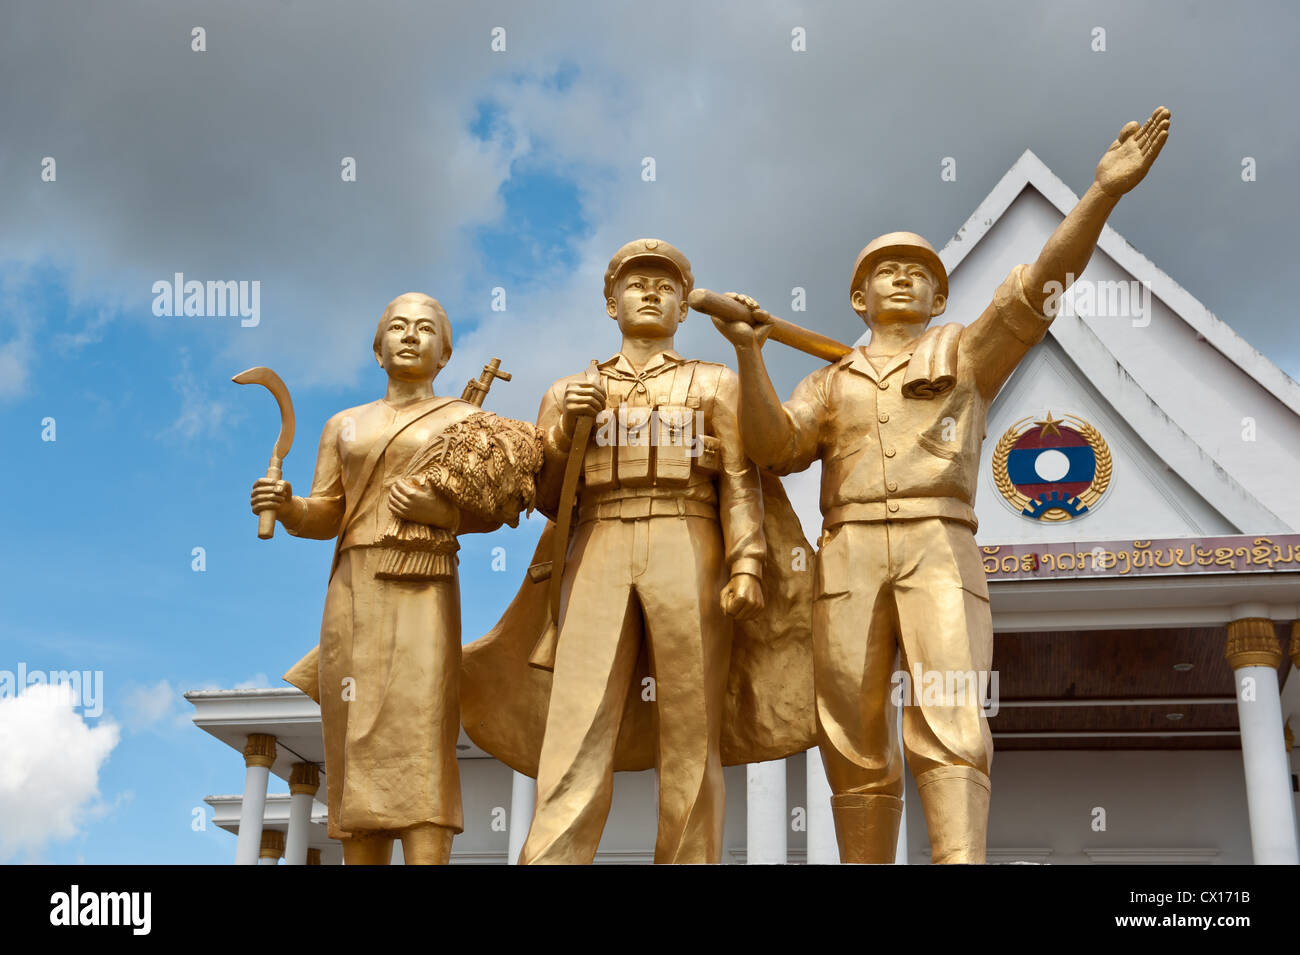 Monument at Lao People's Army History Museum in Vientiane, Laos. - Stock Image